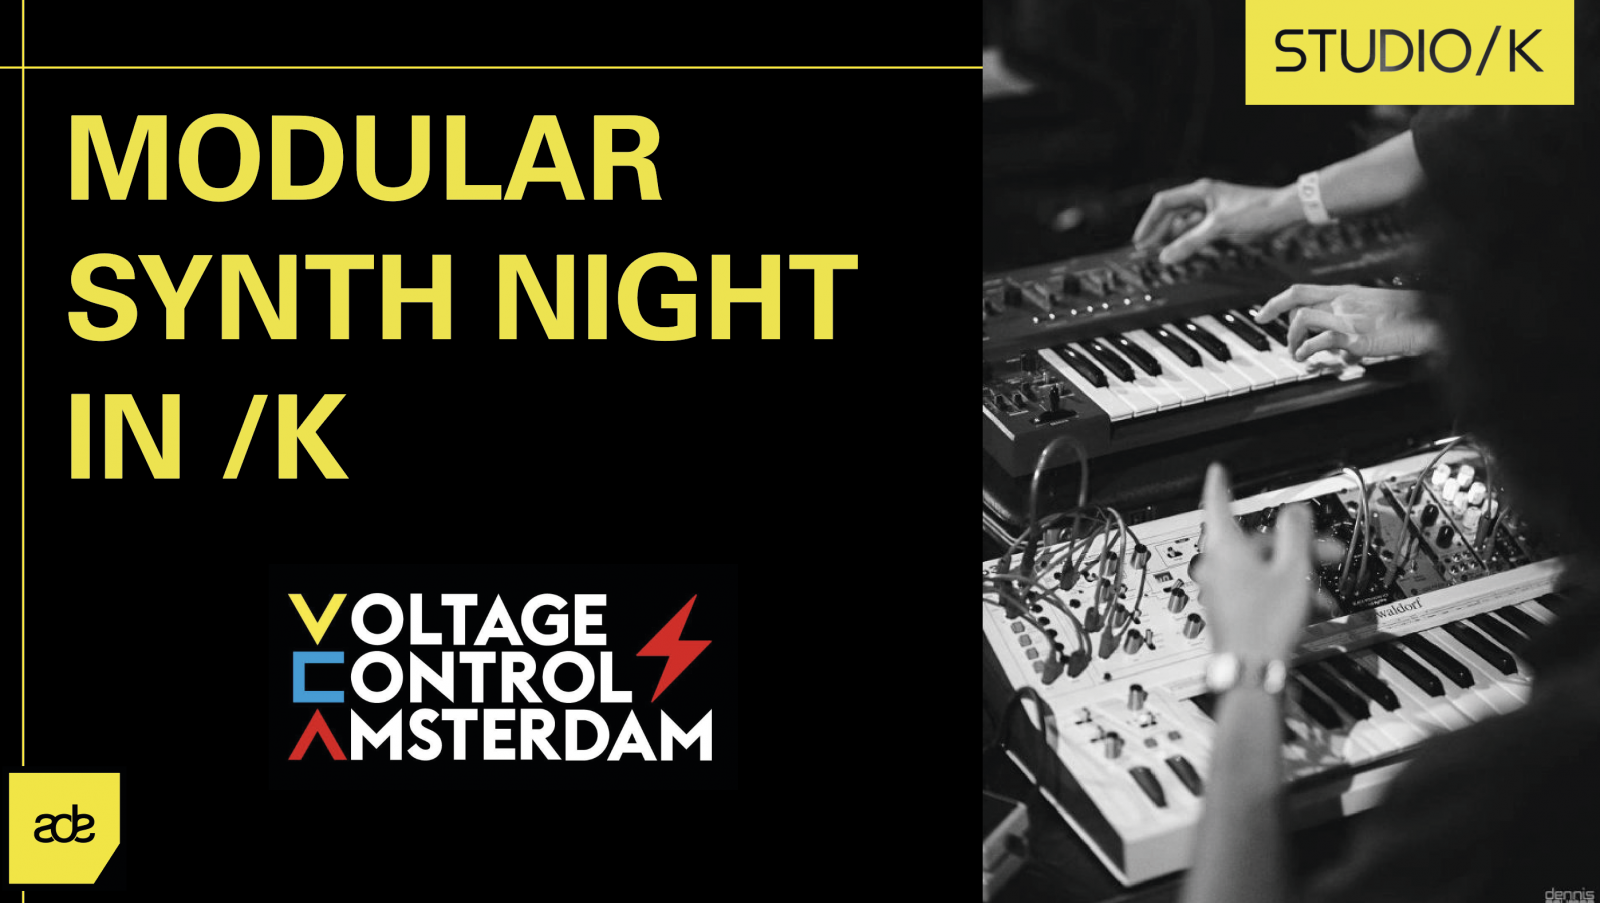 ADE: Modular Synth Night in /K